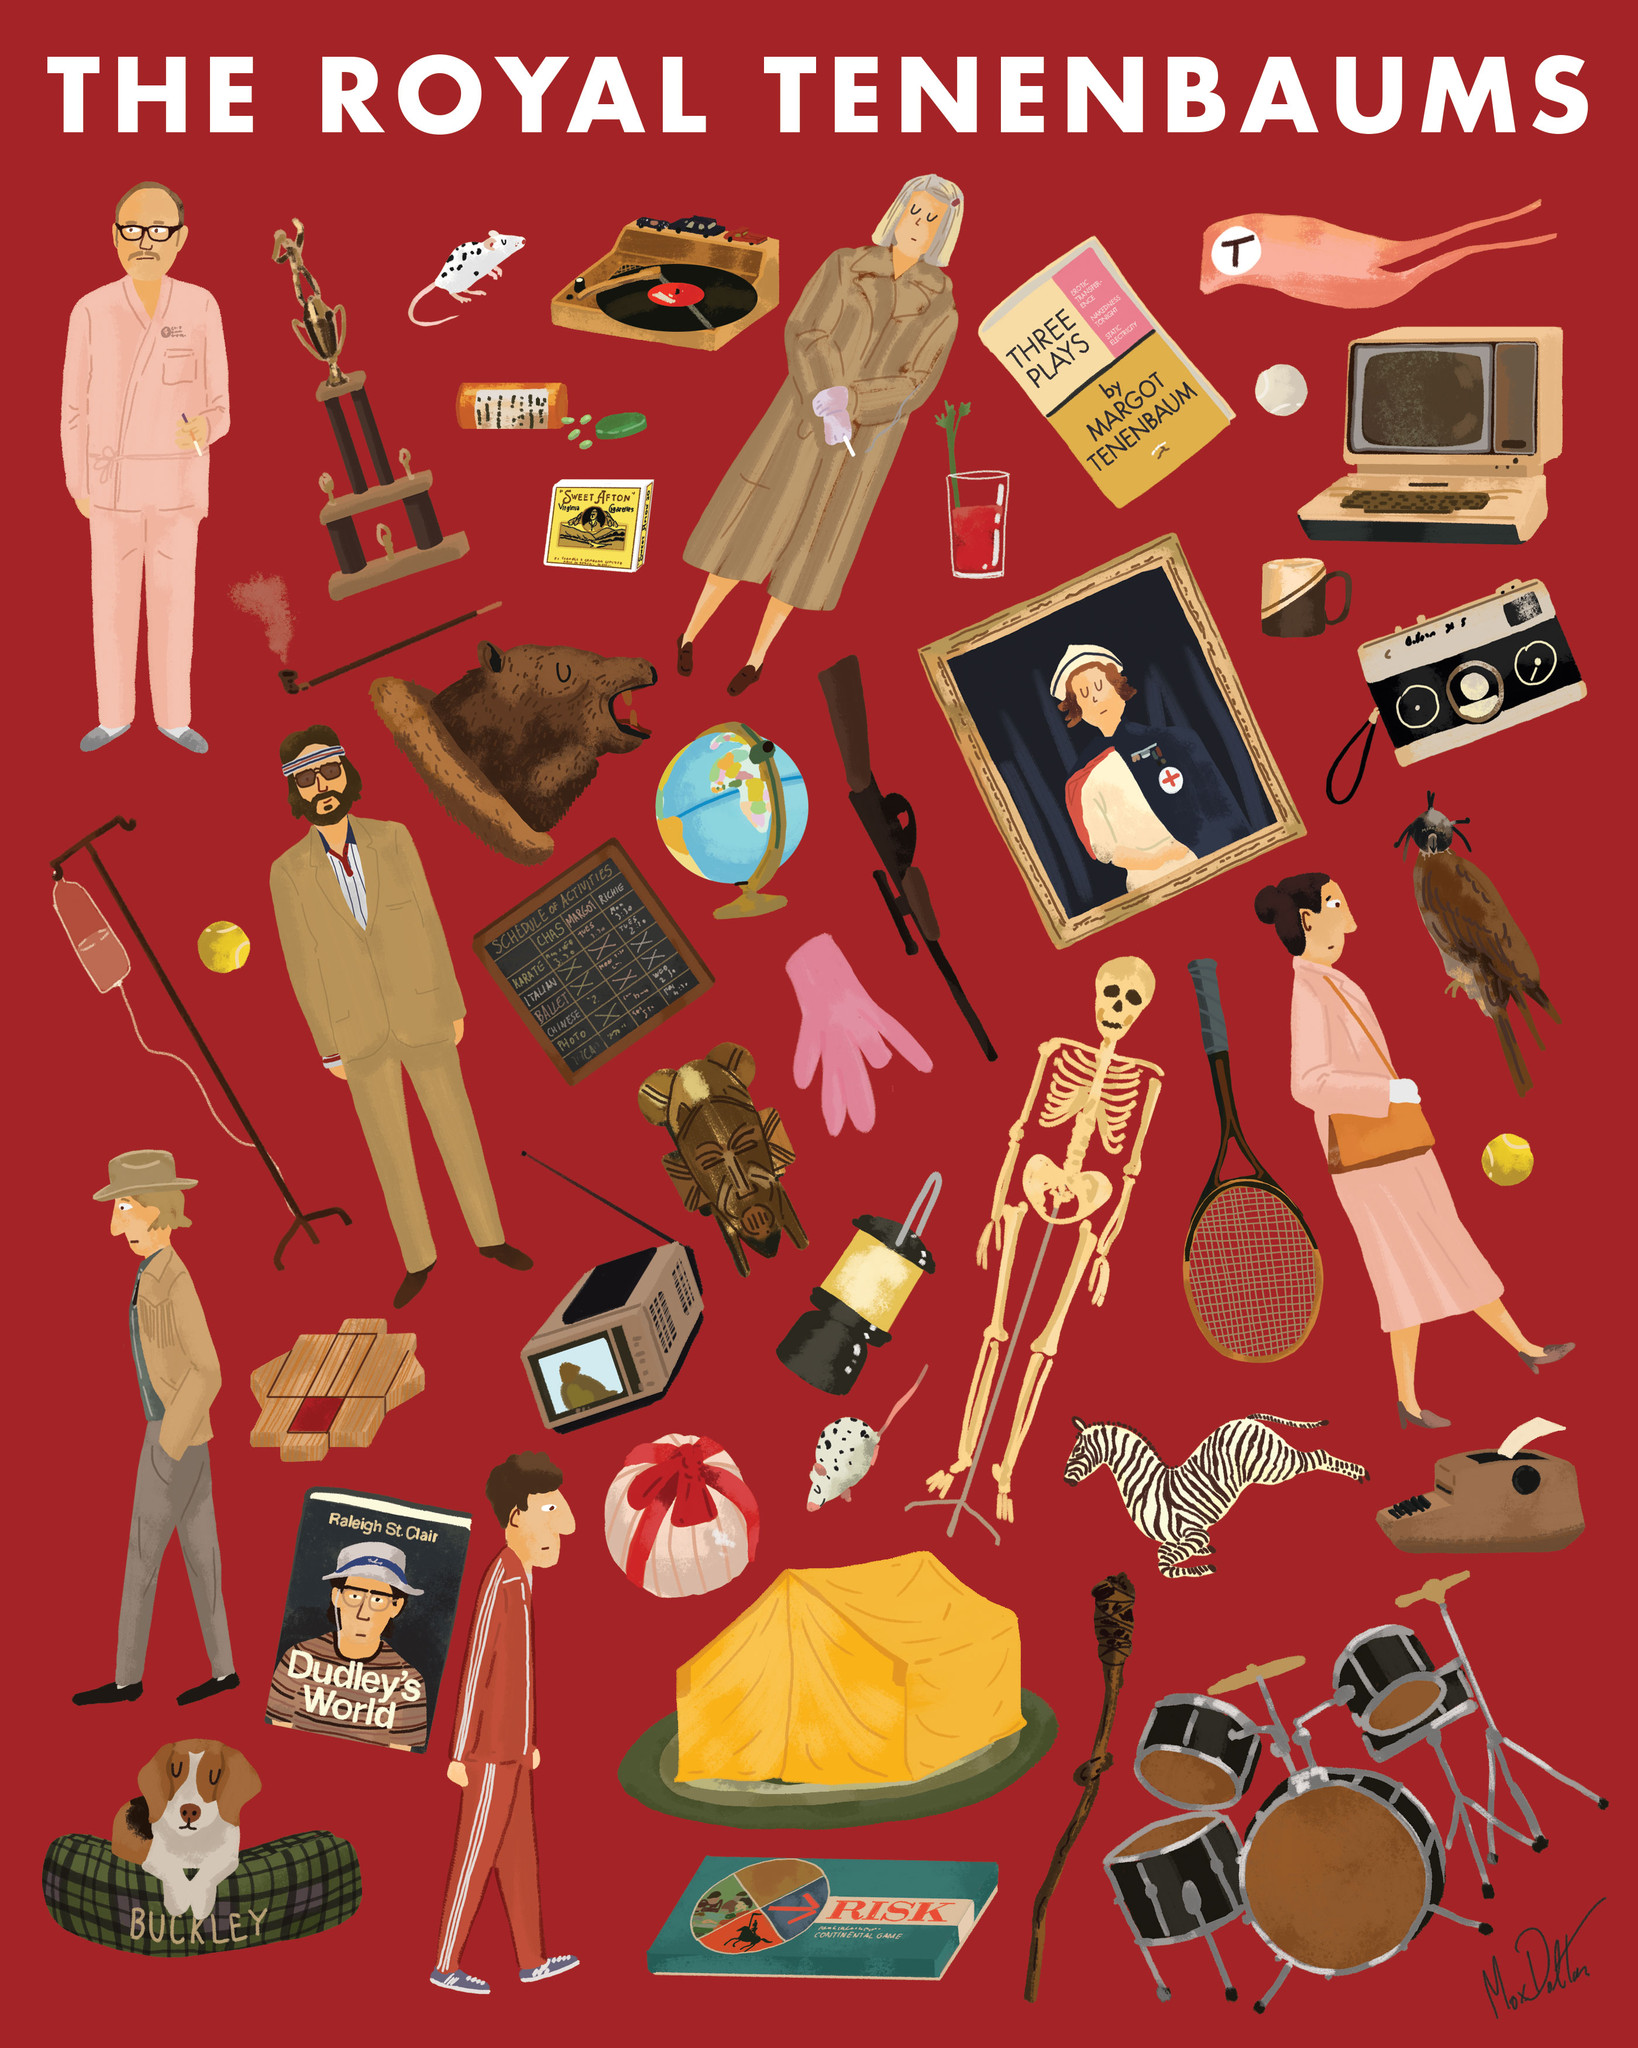 """The Royal Tenenbaums"" by Max Dalton.  8"" x 10"" Giclee.  Ed of 300 N.  $20"